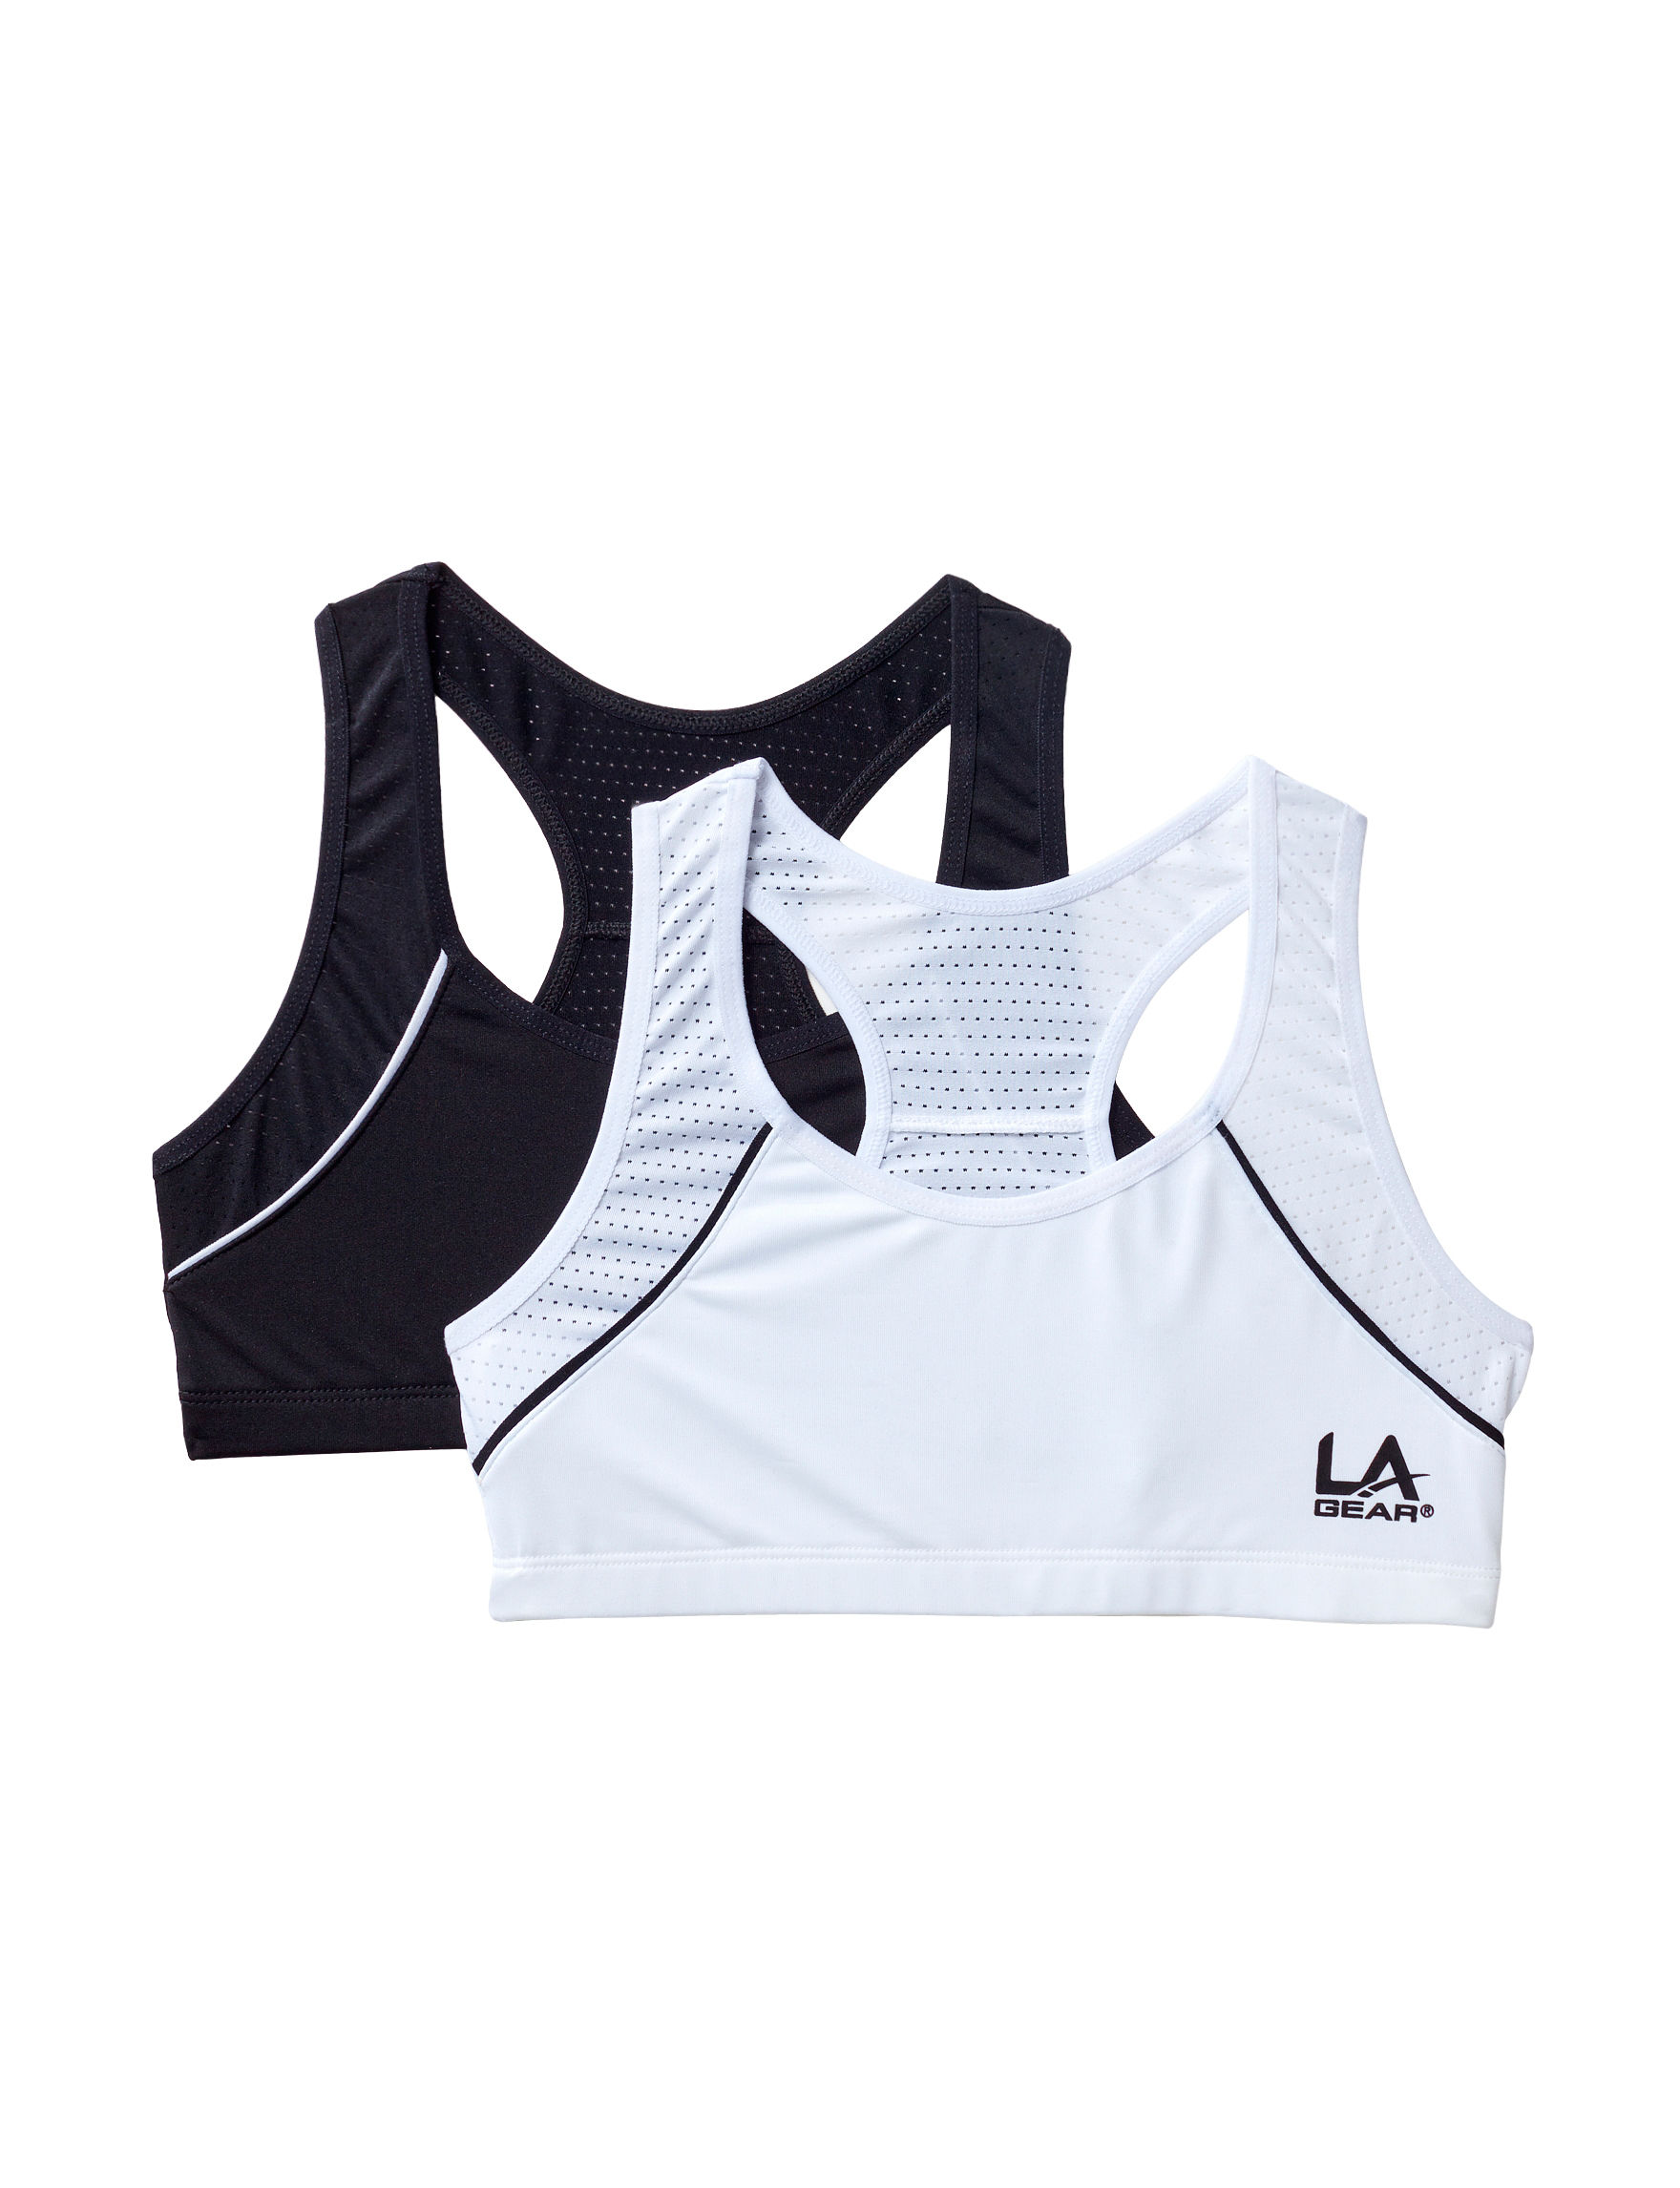 67116dd4ea4a5 UPC 657784133877 product image for L.A. Gear 2-pk. Solid Color Basic Sports  Bra